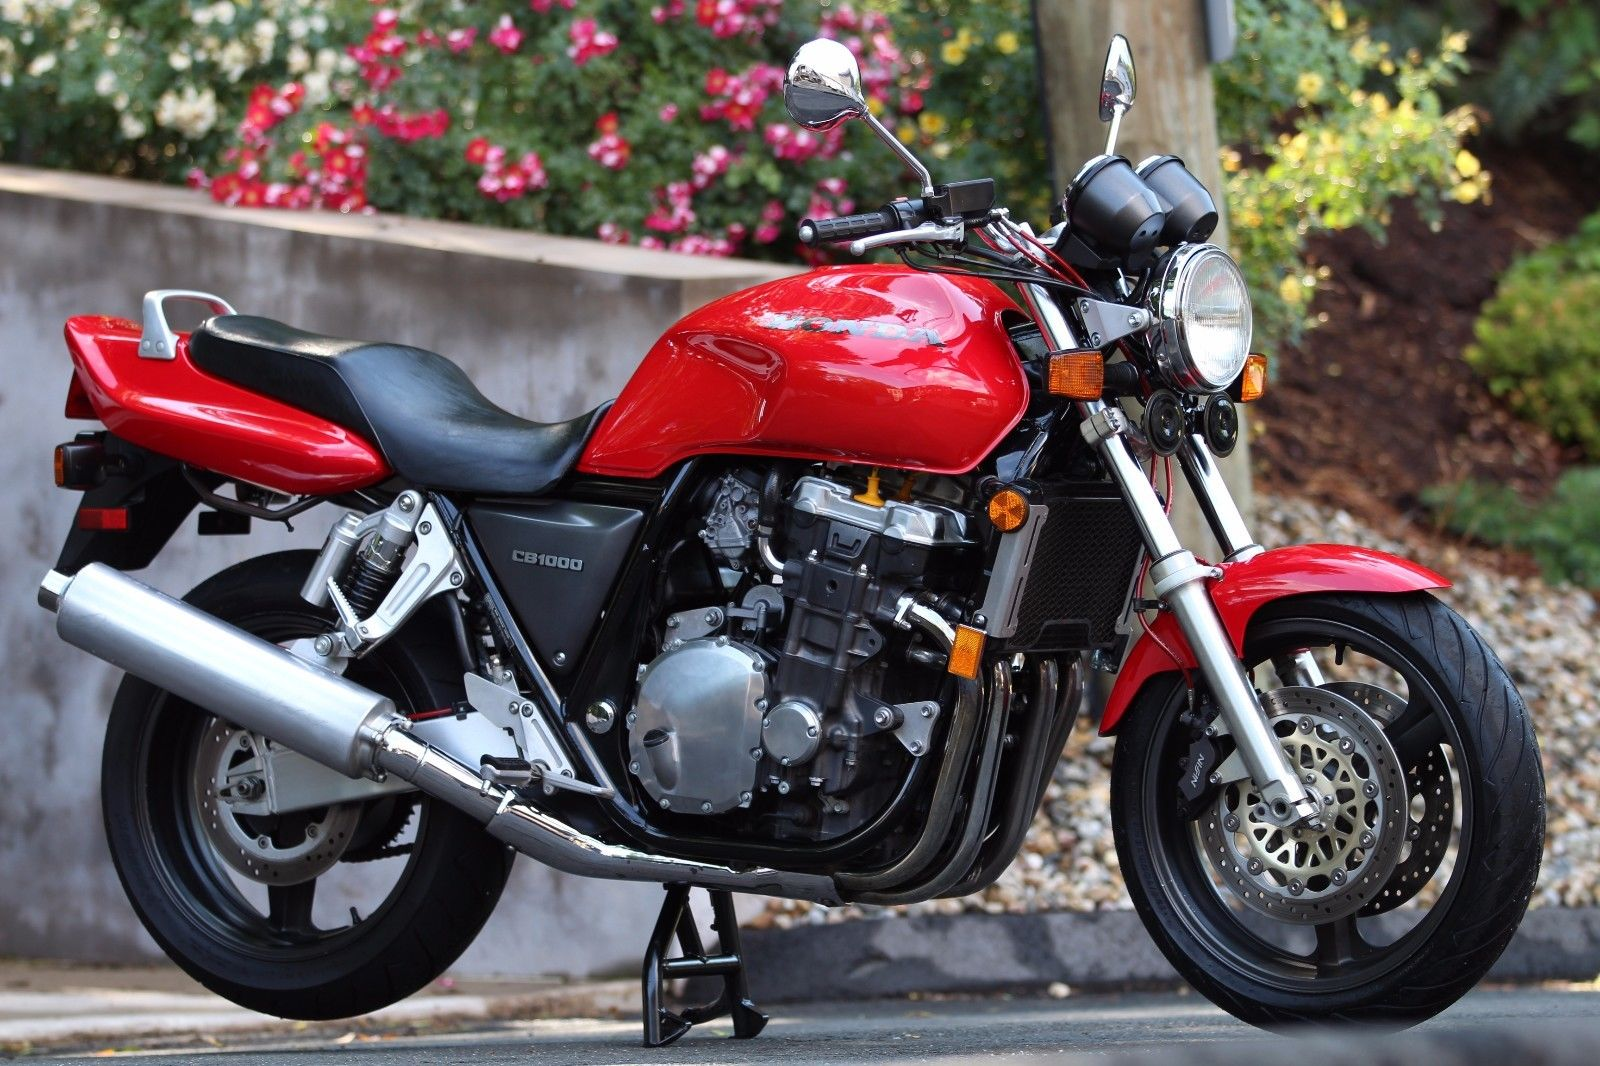 Big Red Muscle Bike: Very Clean 1995 Honda CB1000 for Sale - Rare  SportBikes For Sale